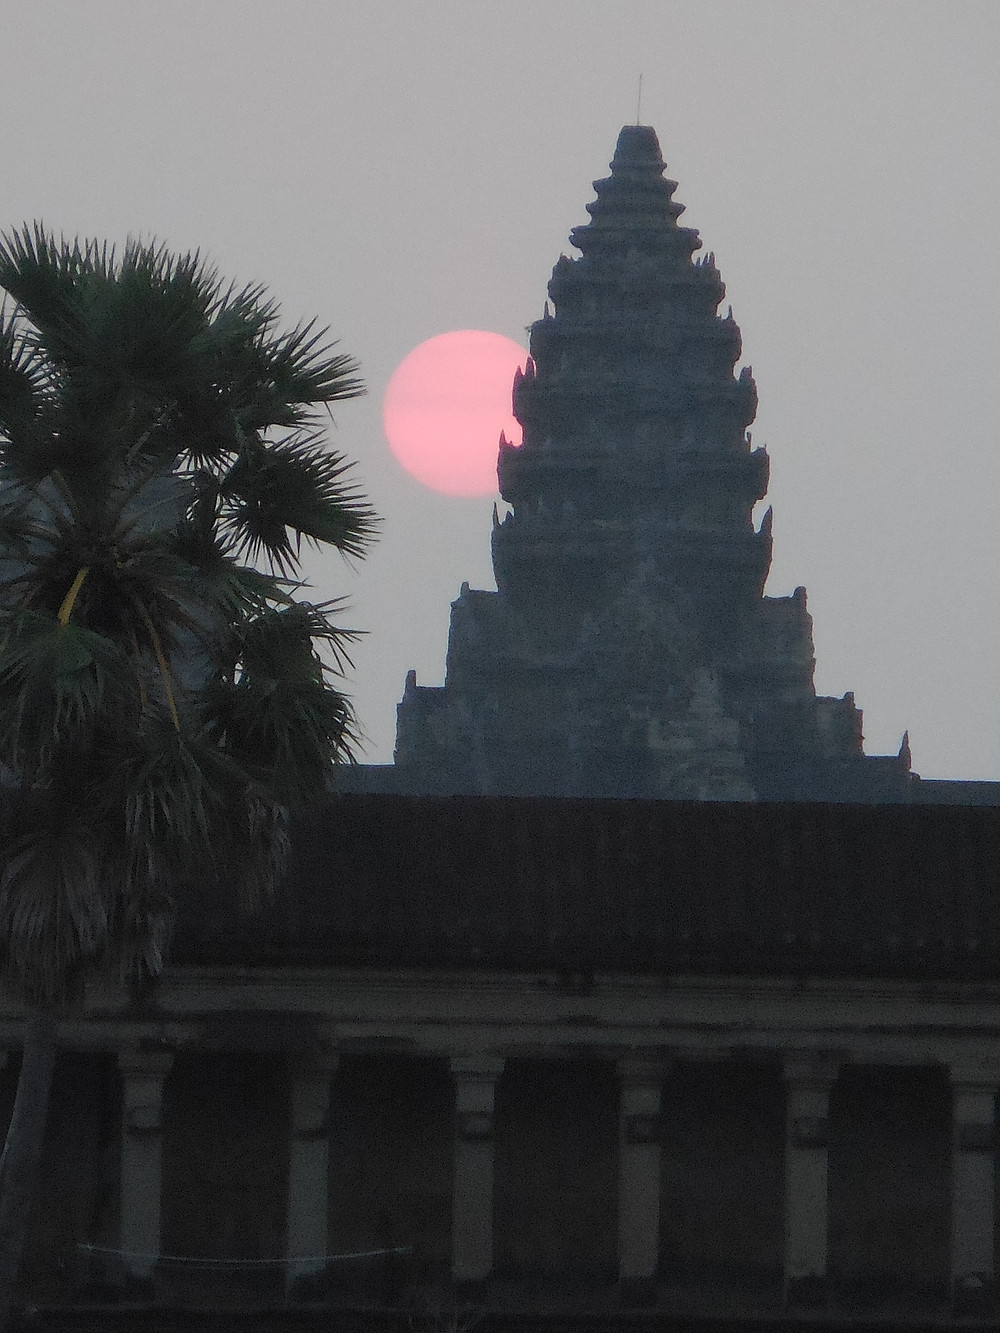 Sunrise over the central tower of Angkor Wat